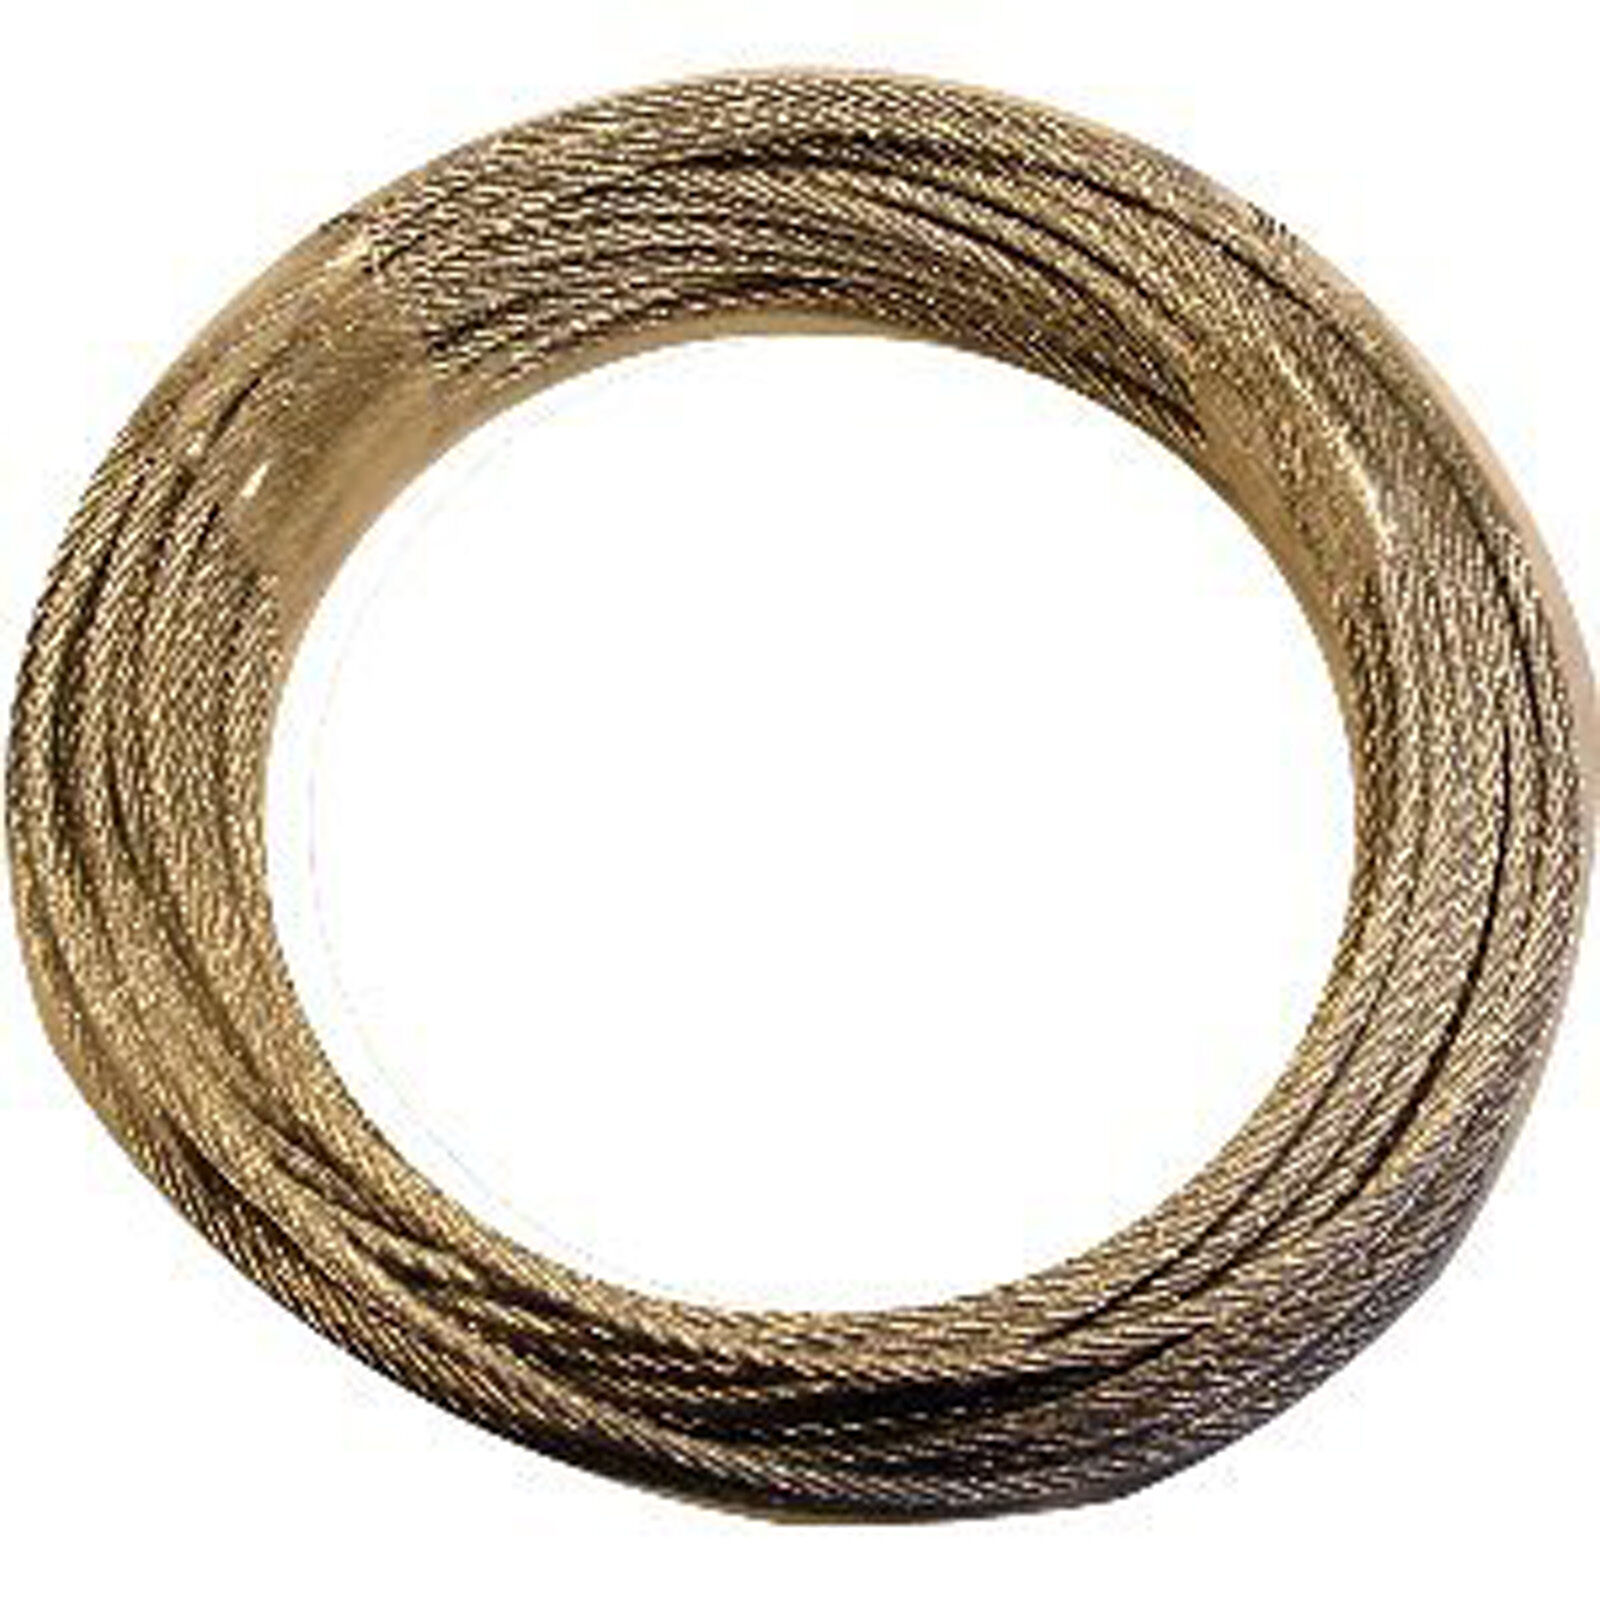 GALVANISED WIRE FOR LONGCASE CLOCK: 21ft x 1.5mm - Flexible, Strong 7x7 Strand